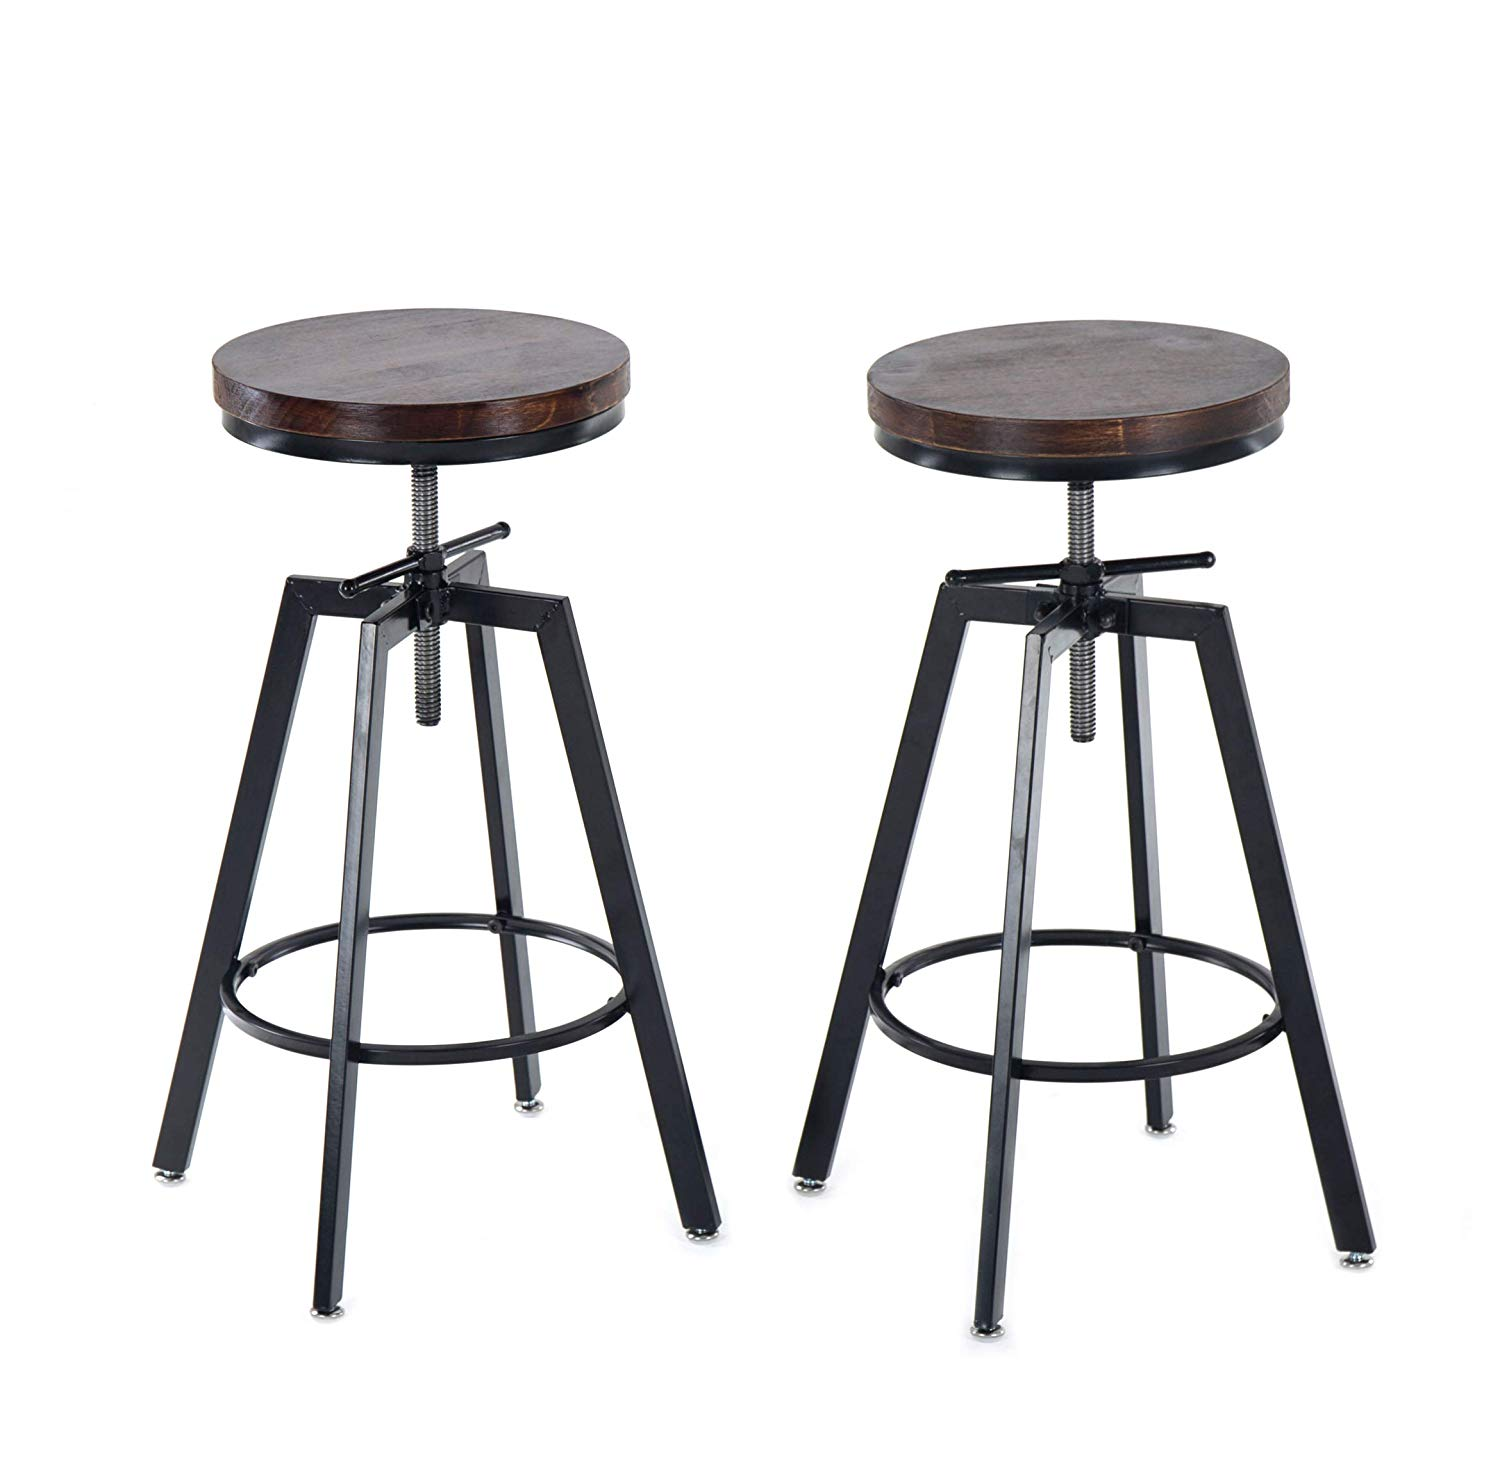 JOELGIUM Adjustable Height Swivel Bar Stools -Set of 2